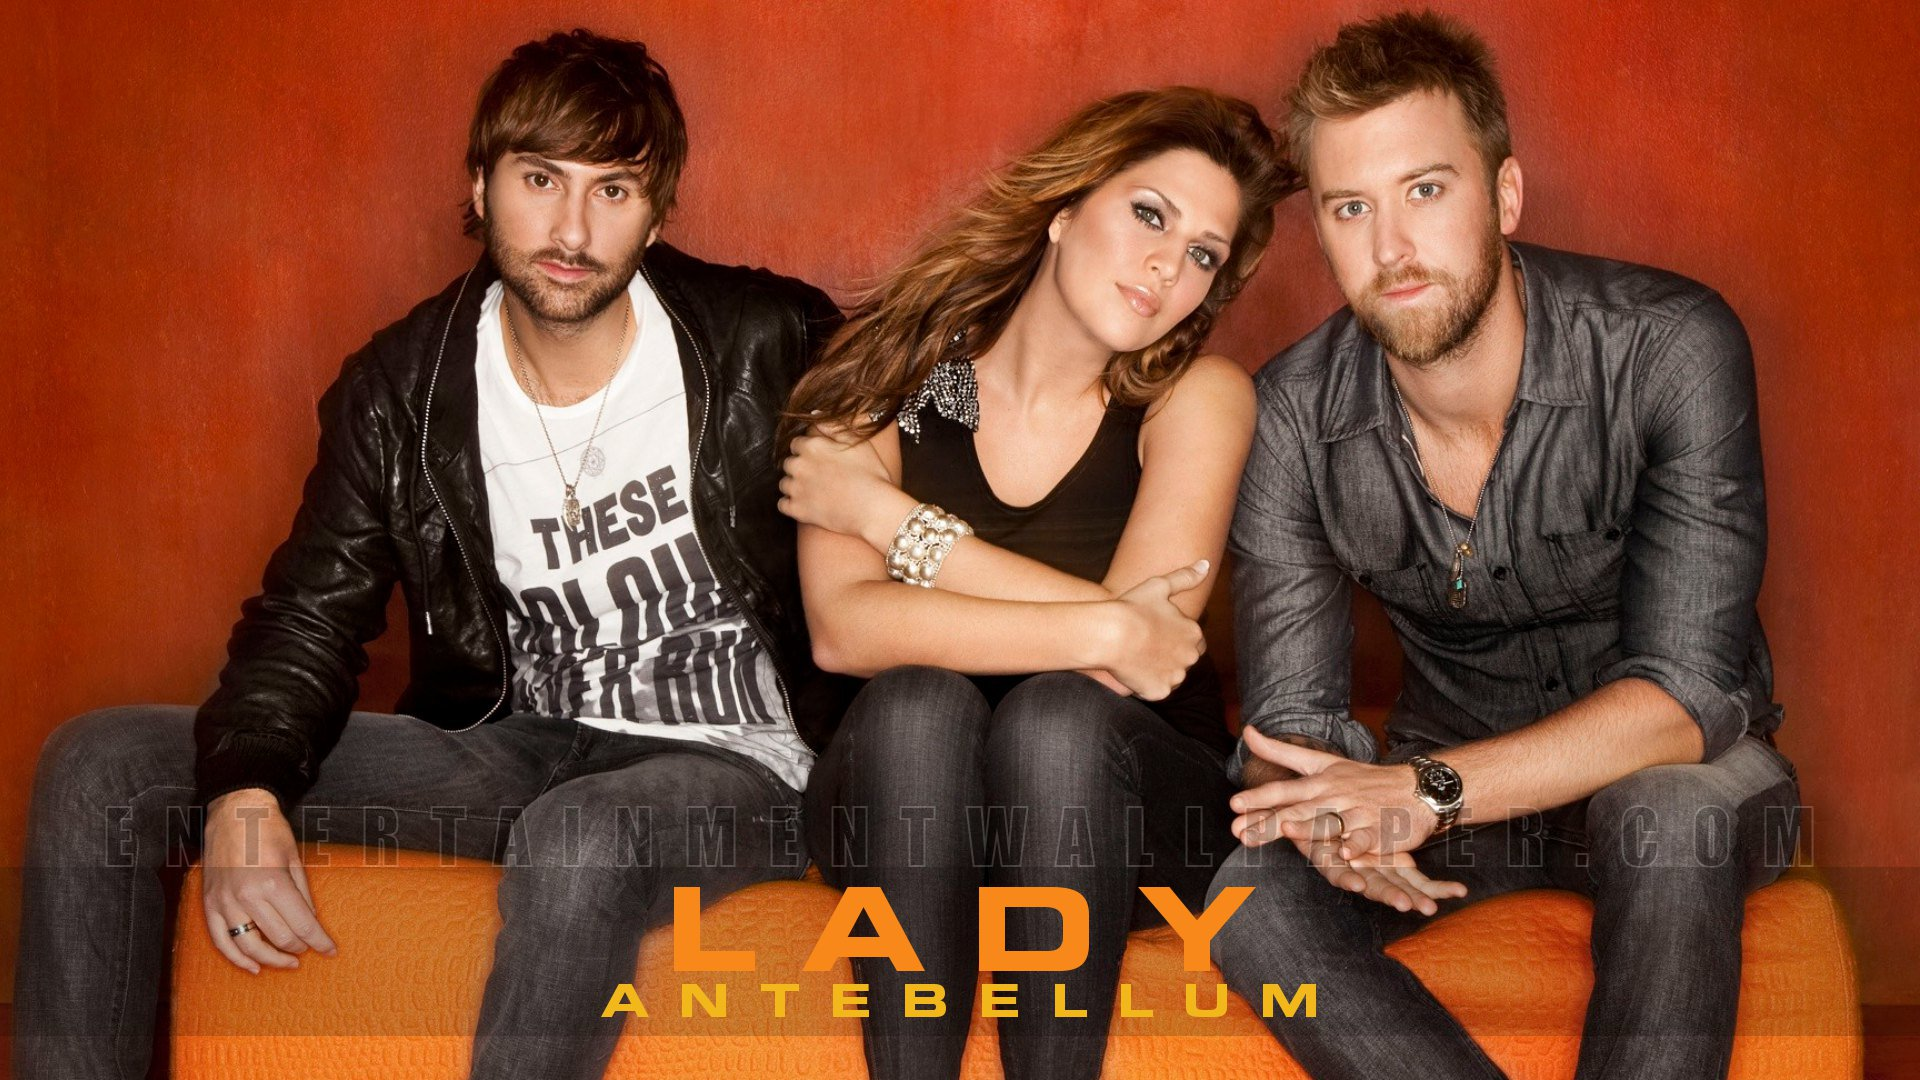 Lady Antebellum Wallpaper - Original size, download now.